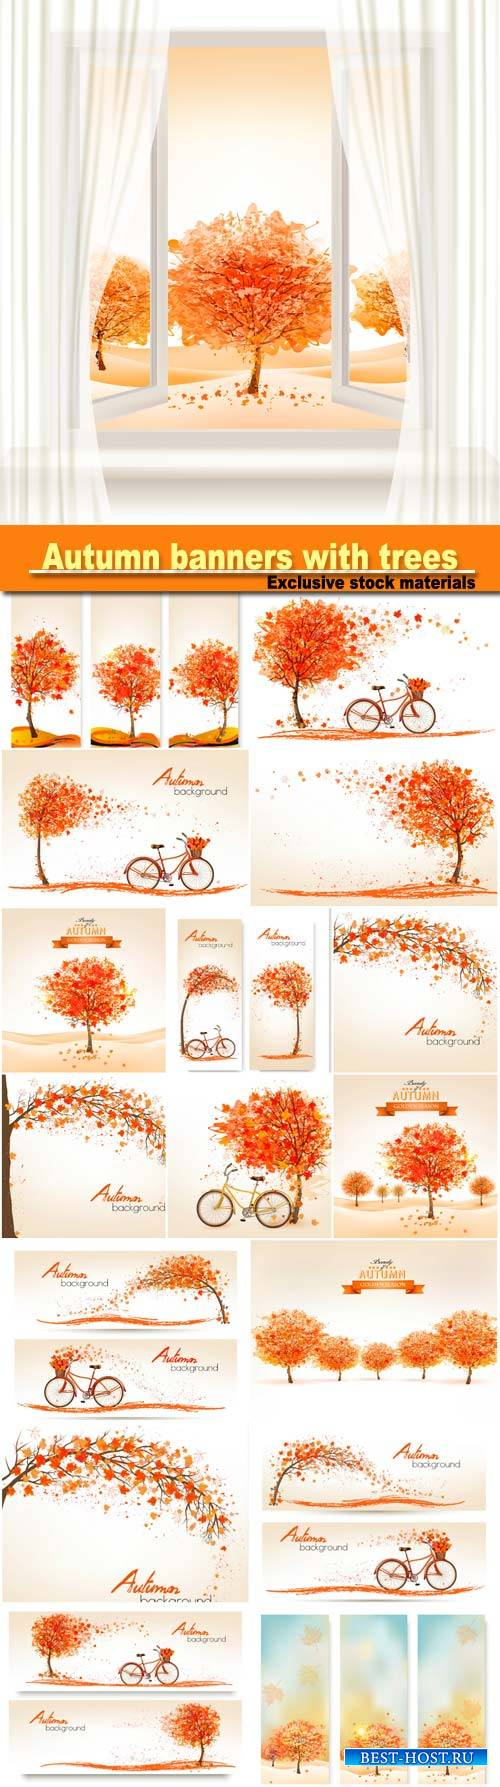 Autumn banners with trees and a bicycle